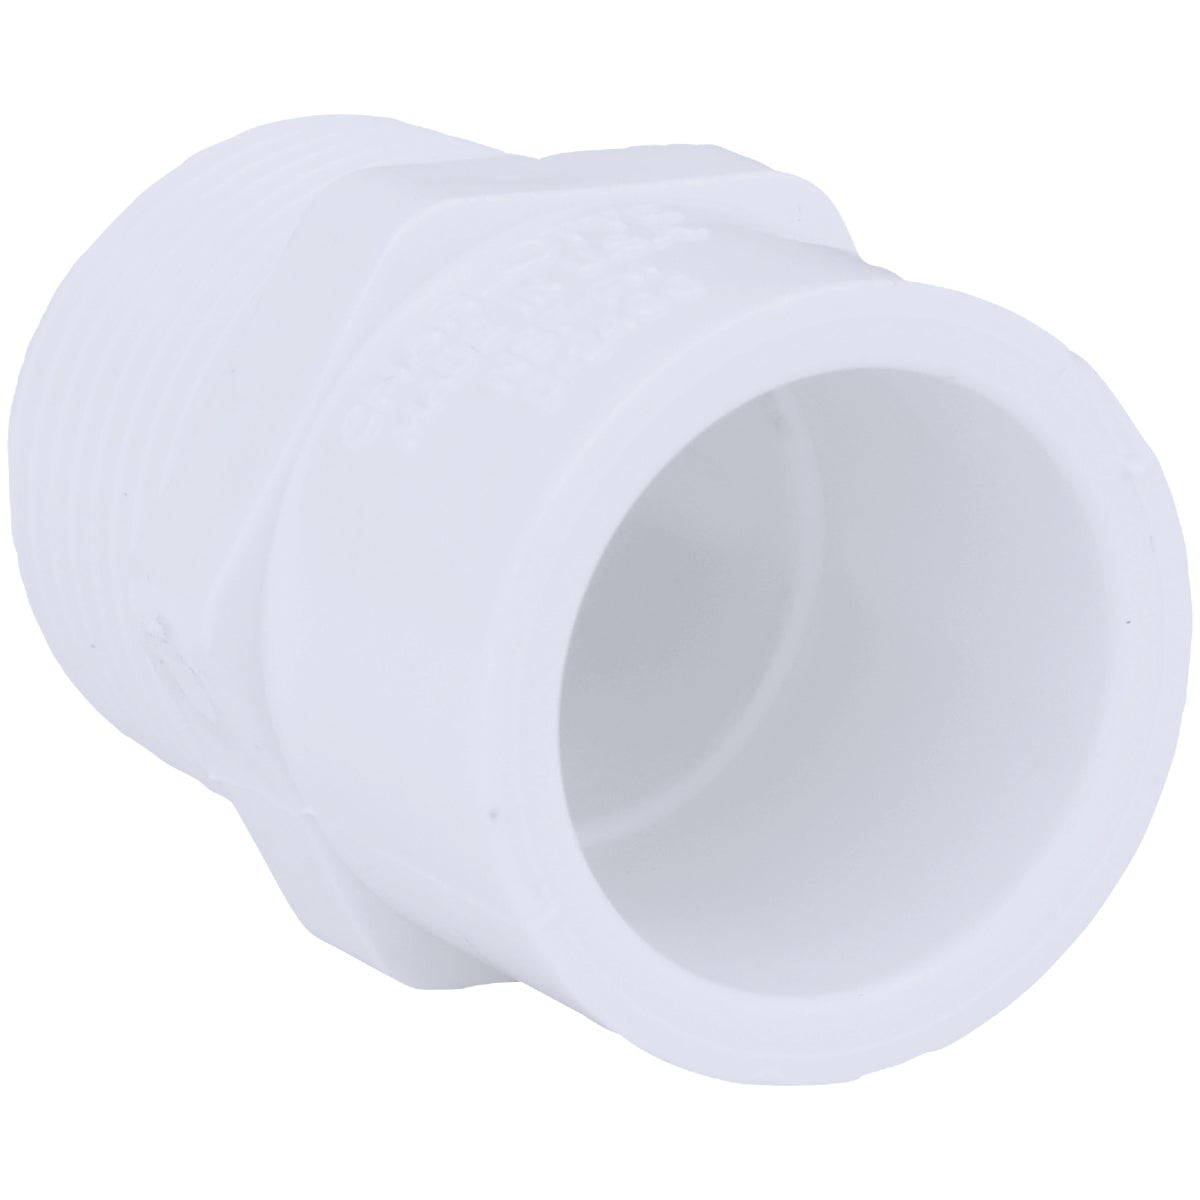 3/4X1/2 PVC MXS ADAPTER - 30457 by Genova Inc